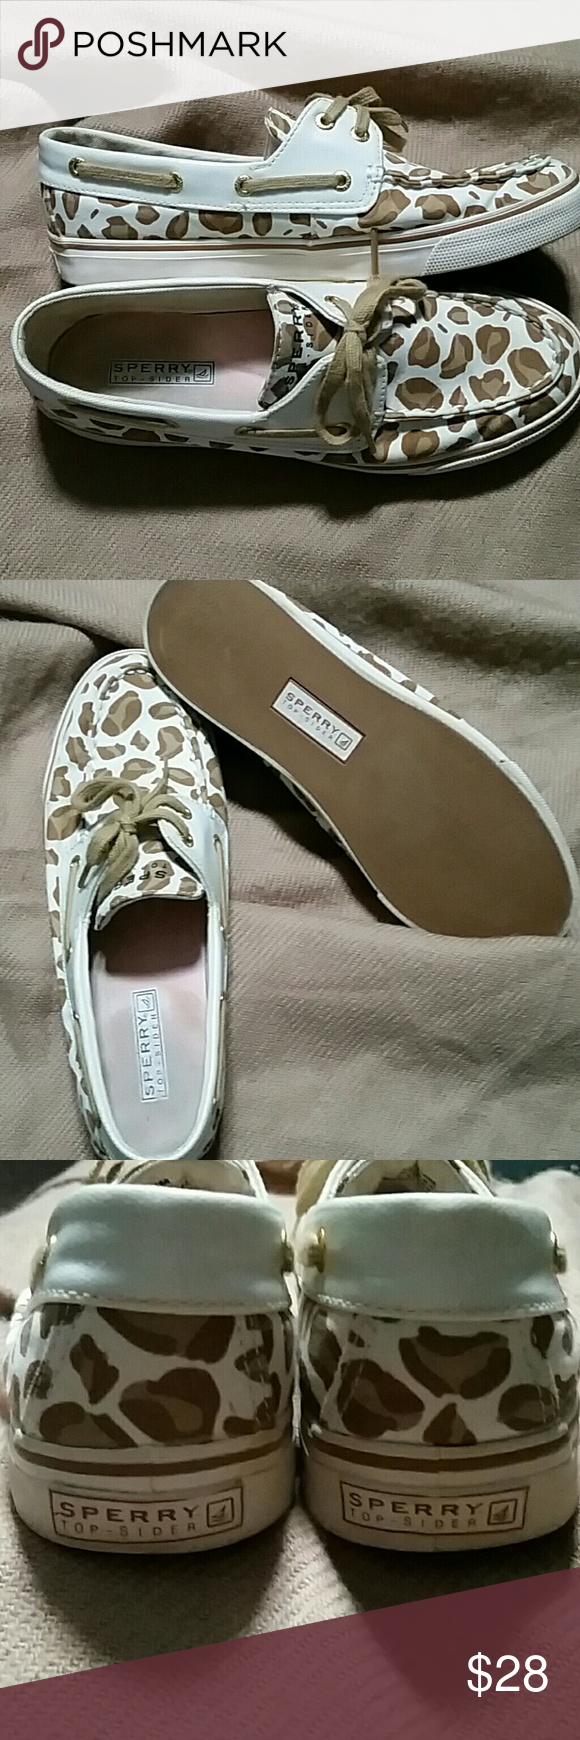 Sperry Top - Sider Cheetah print loafers by Sperry.  Pre-owned, but great condition, no stains or rips only inside wear shown. Sperry Top-Sider Shoes Flats & Loafers